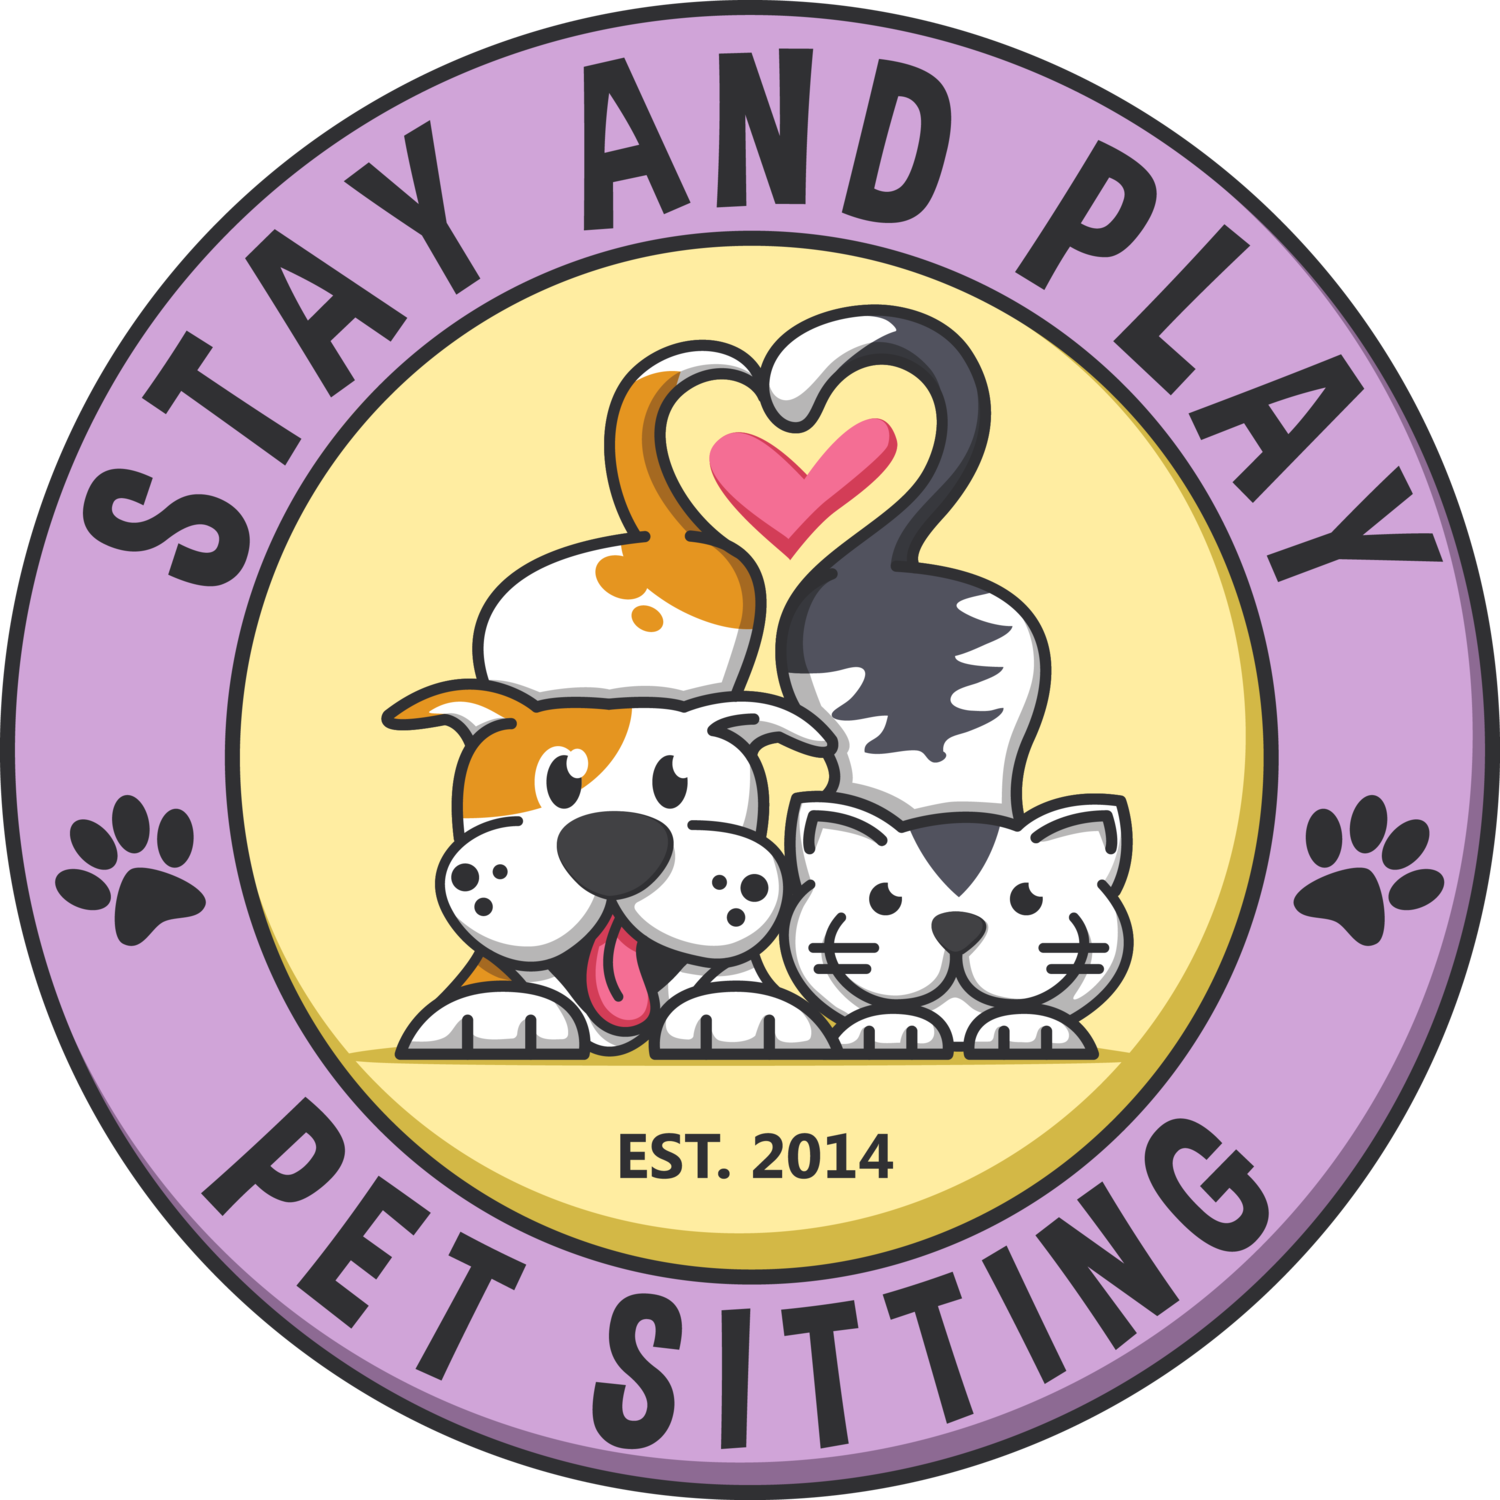 Stay & Play Pet Sitting